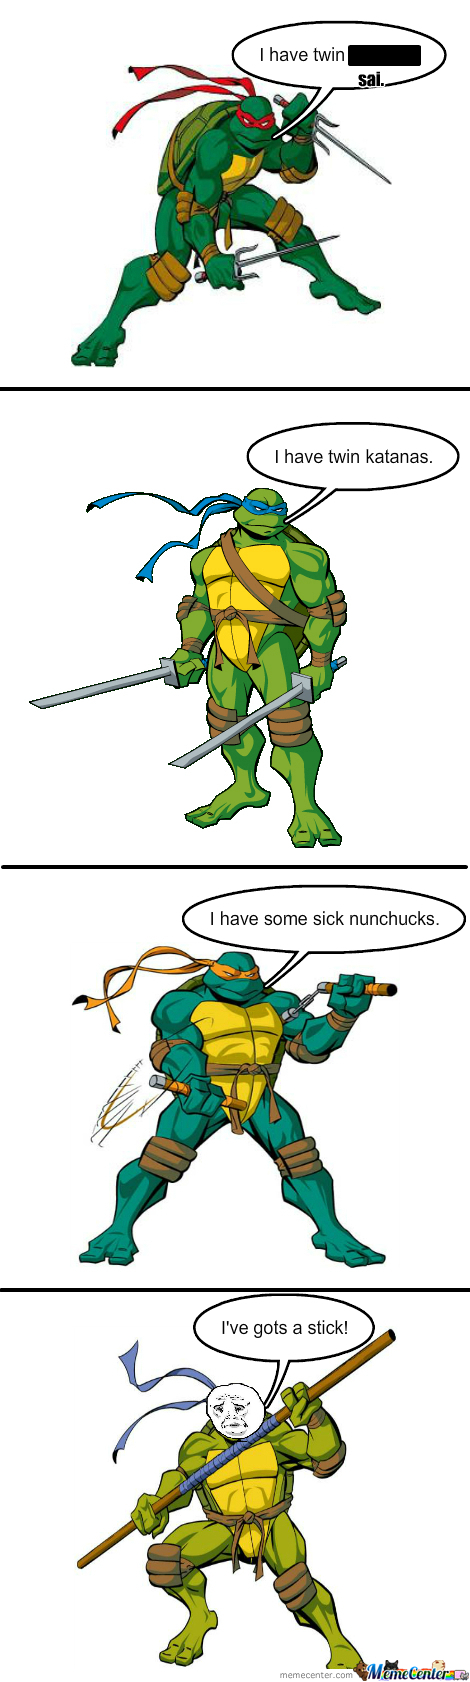 [RMX] Teenage Mutant Ninja Turtles